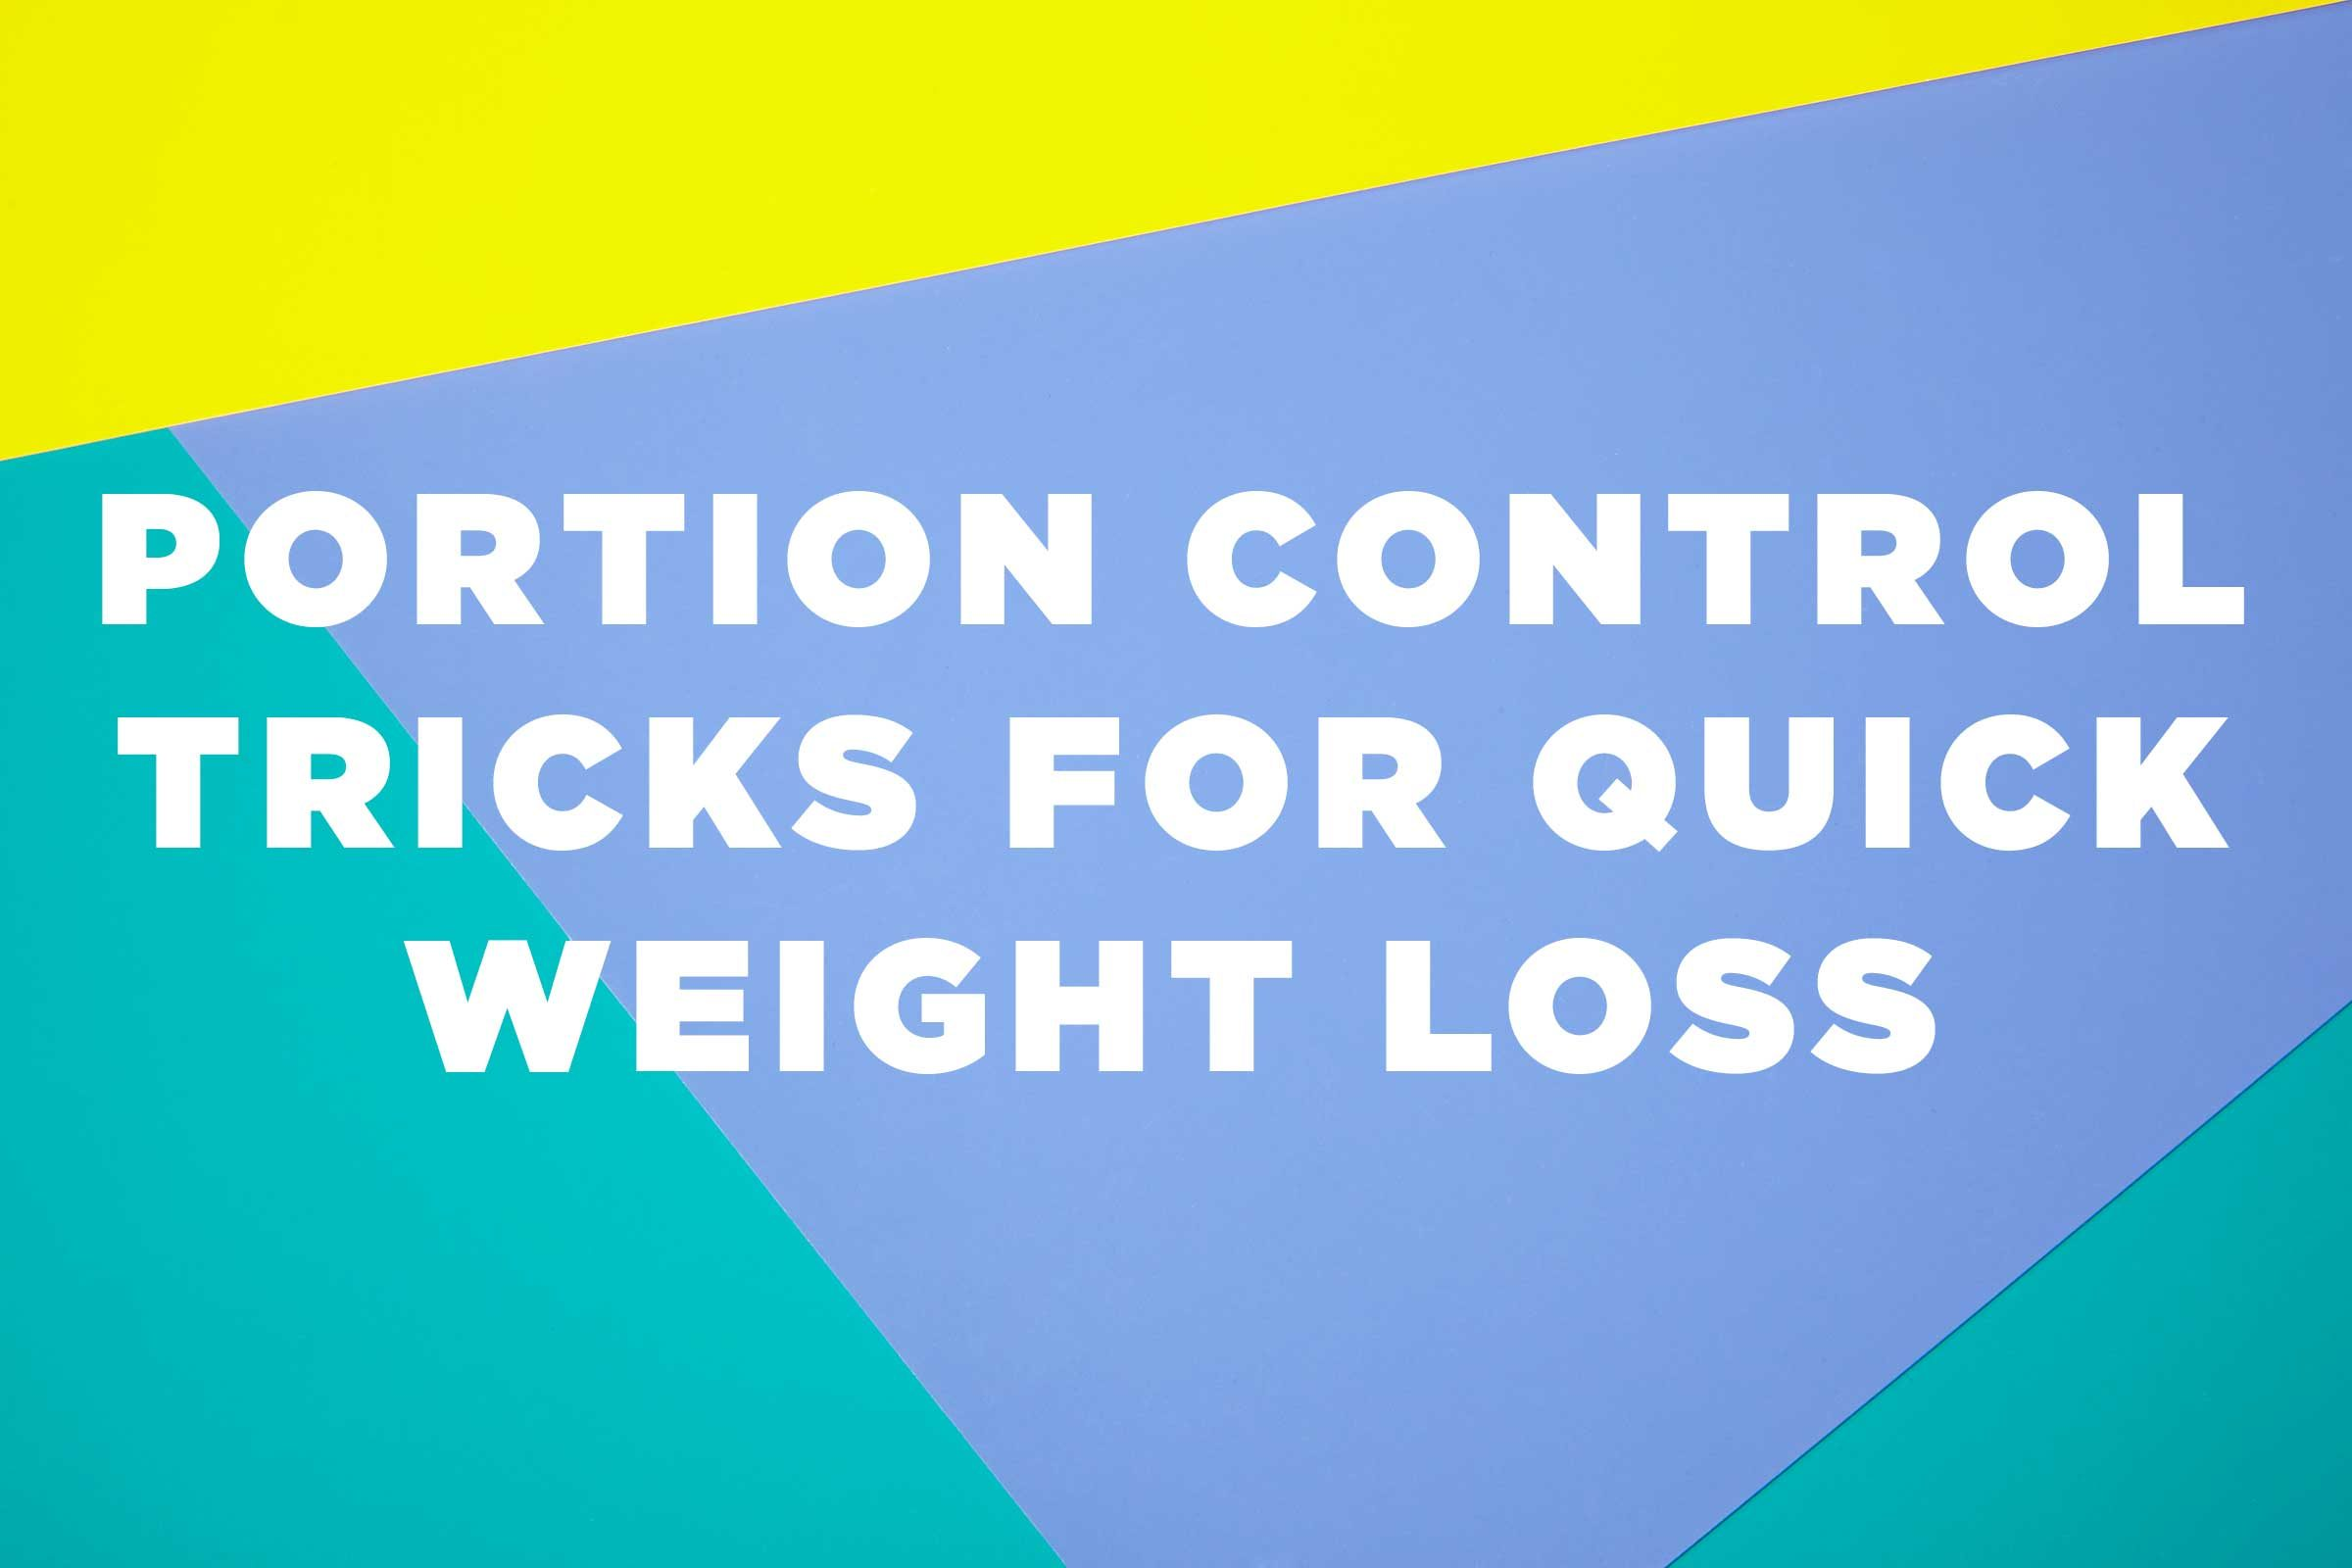 Control Portion Sizes For Quick Weight Loss Readers Digest